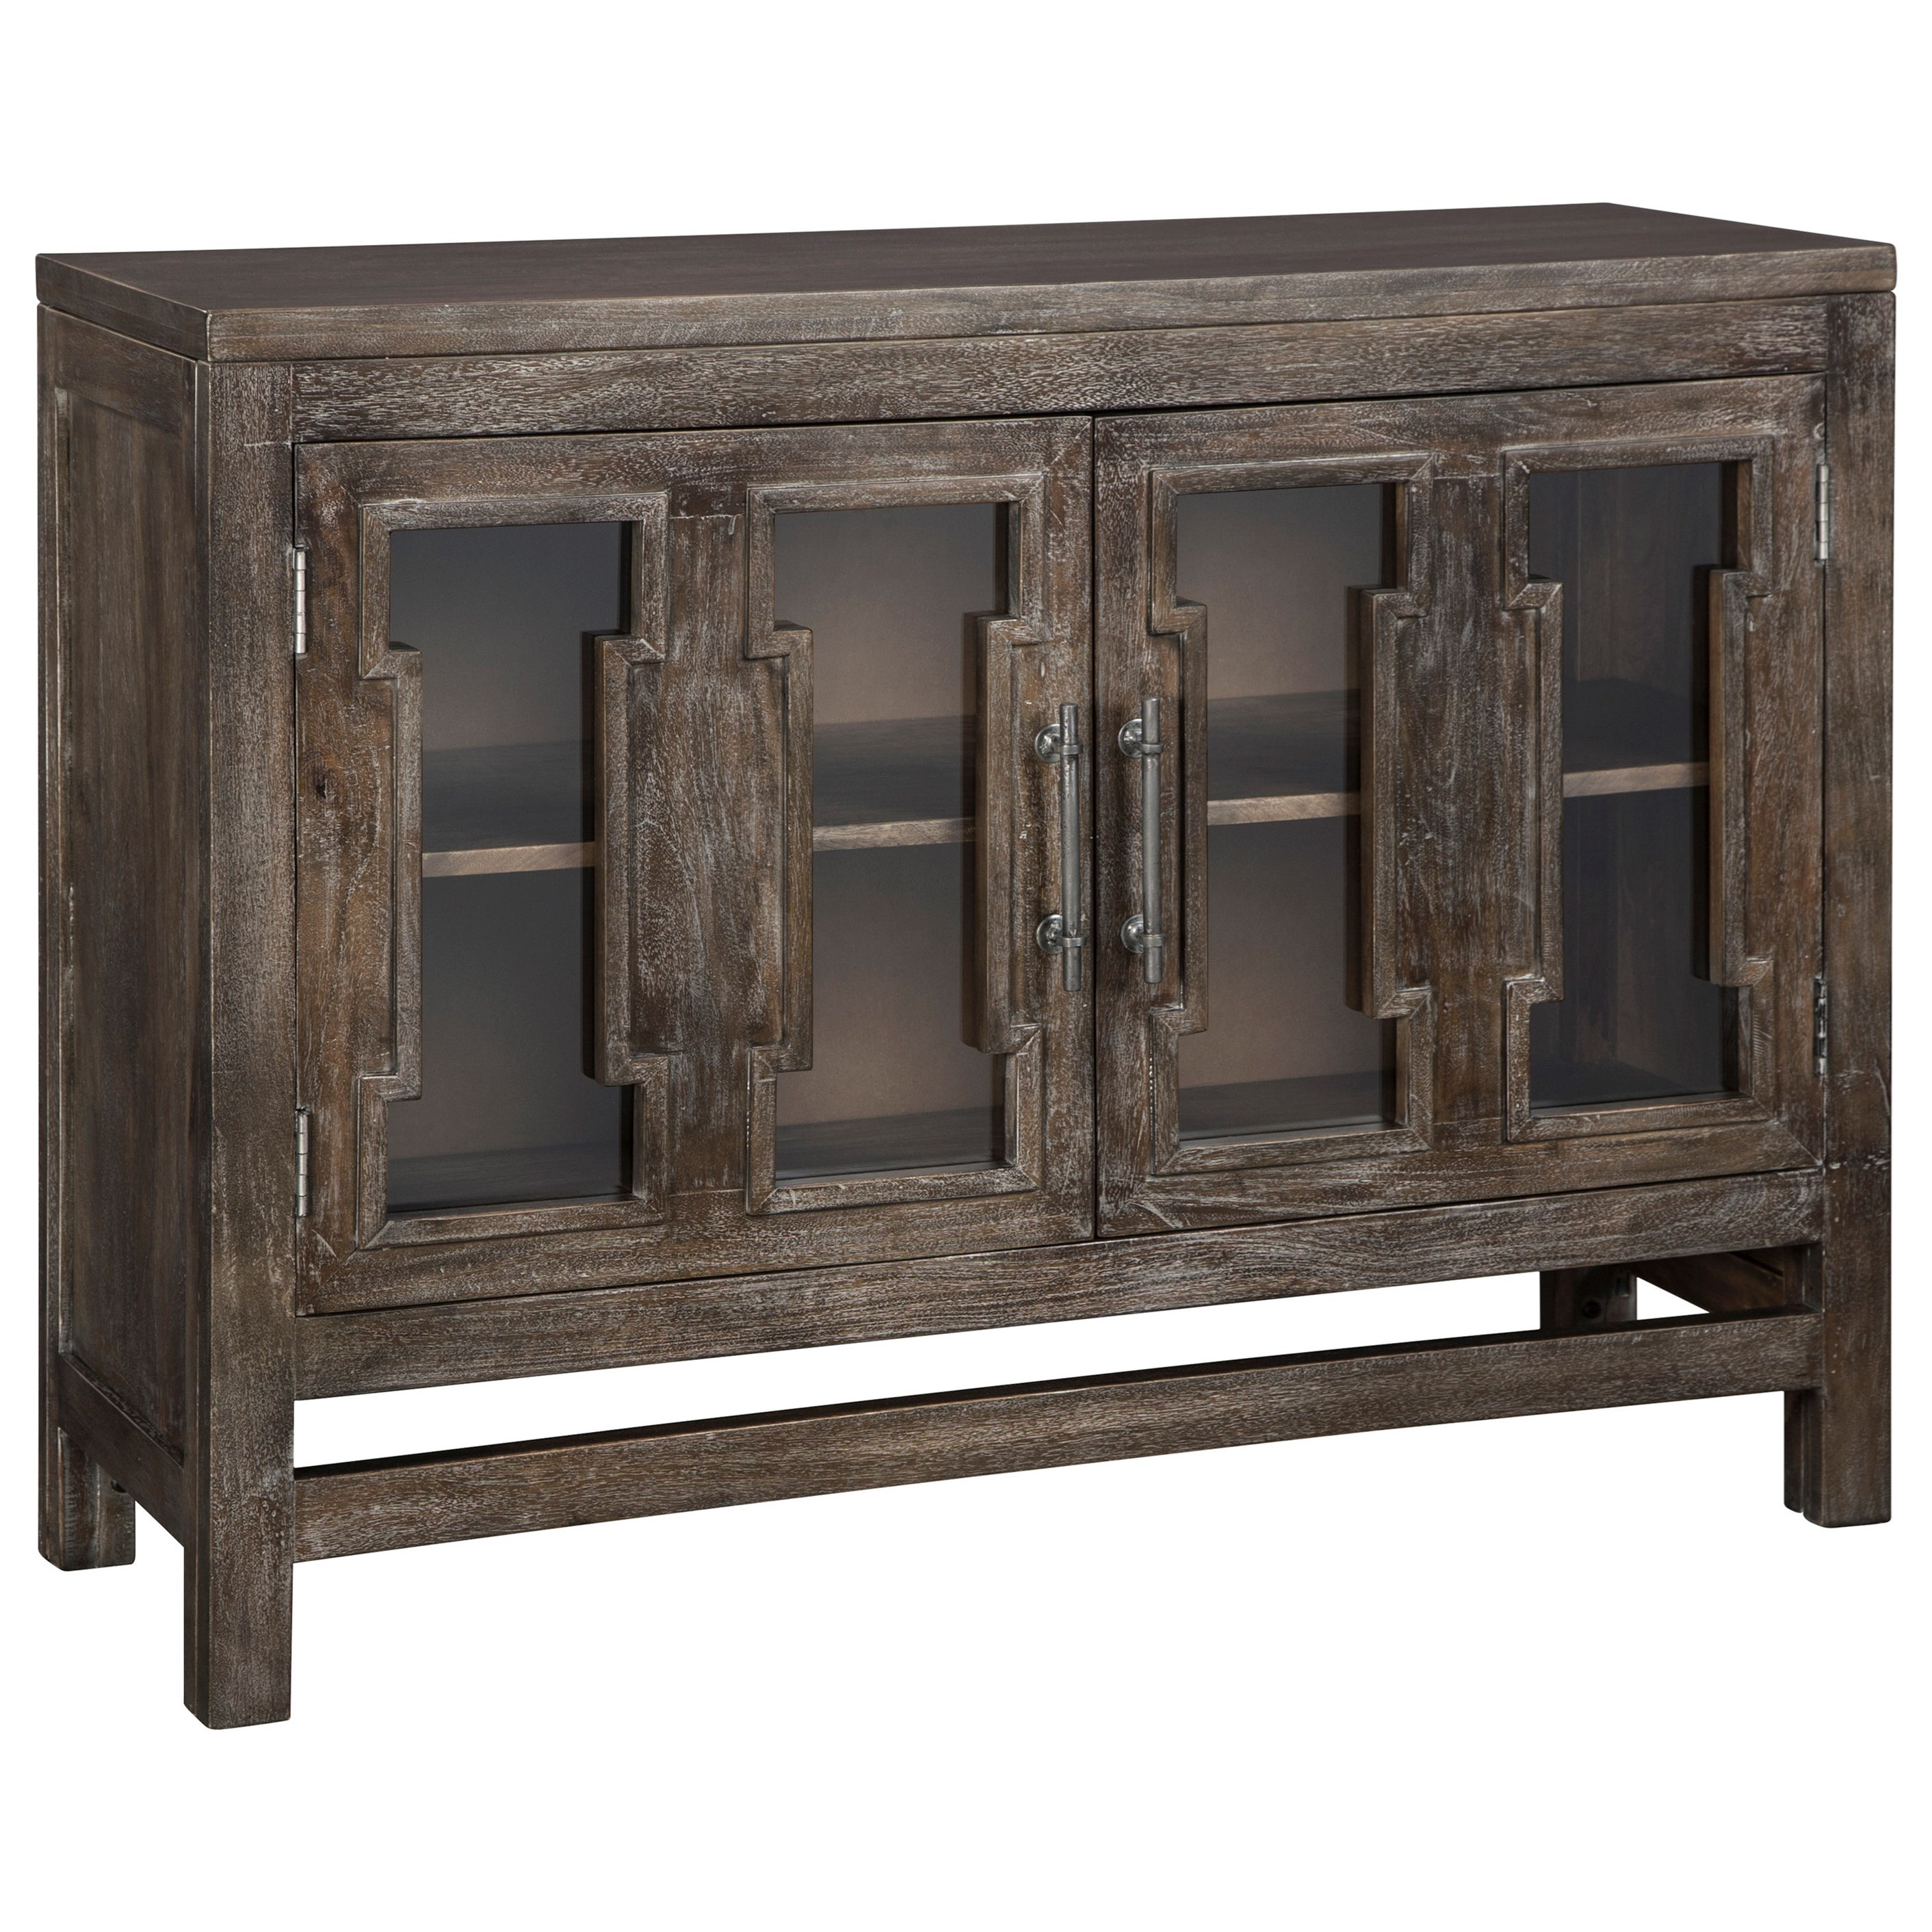 Hanimont Accent Cabinet by Signature Design by Ashley at Zak's Warehouse Clearance Center